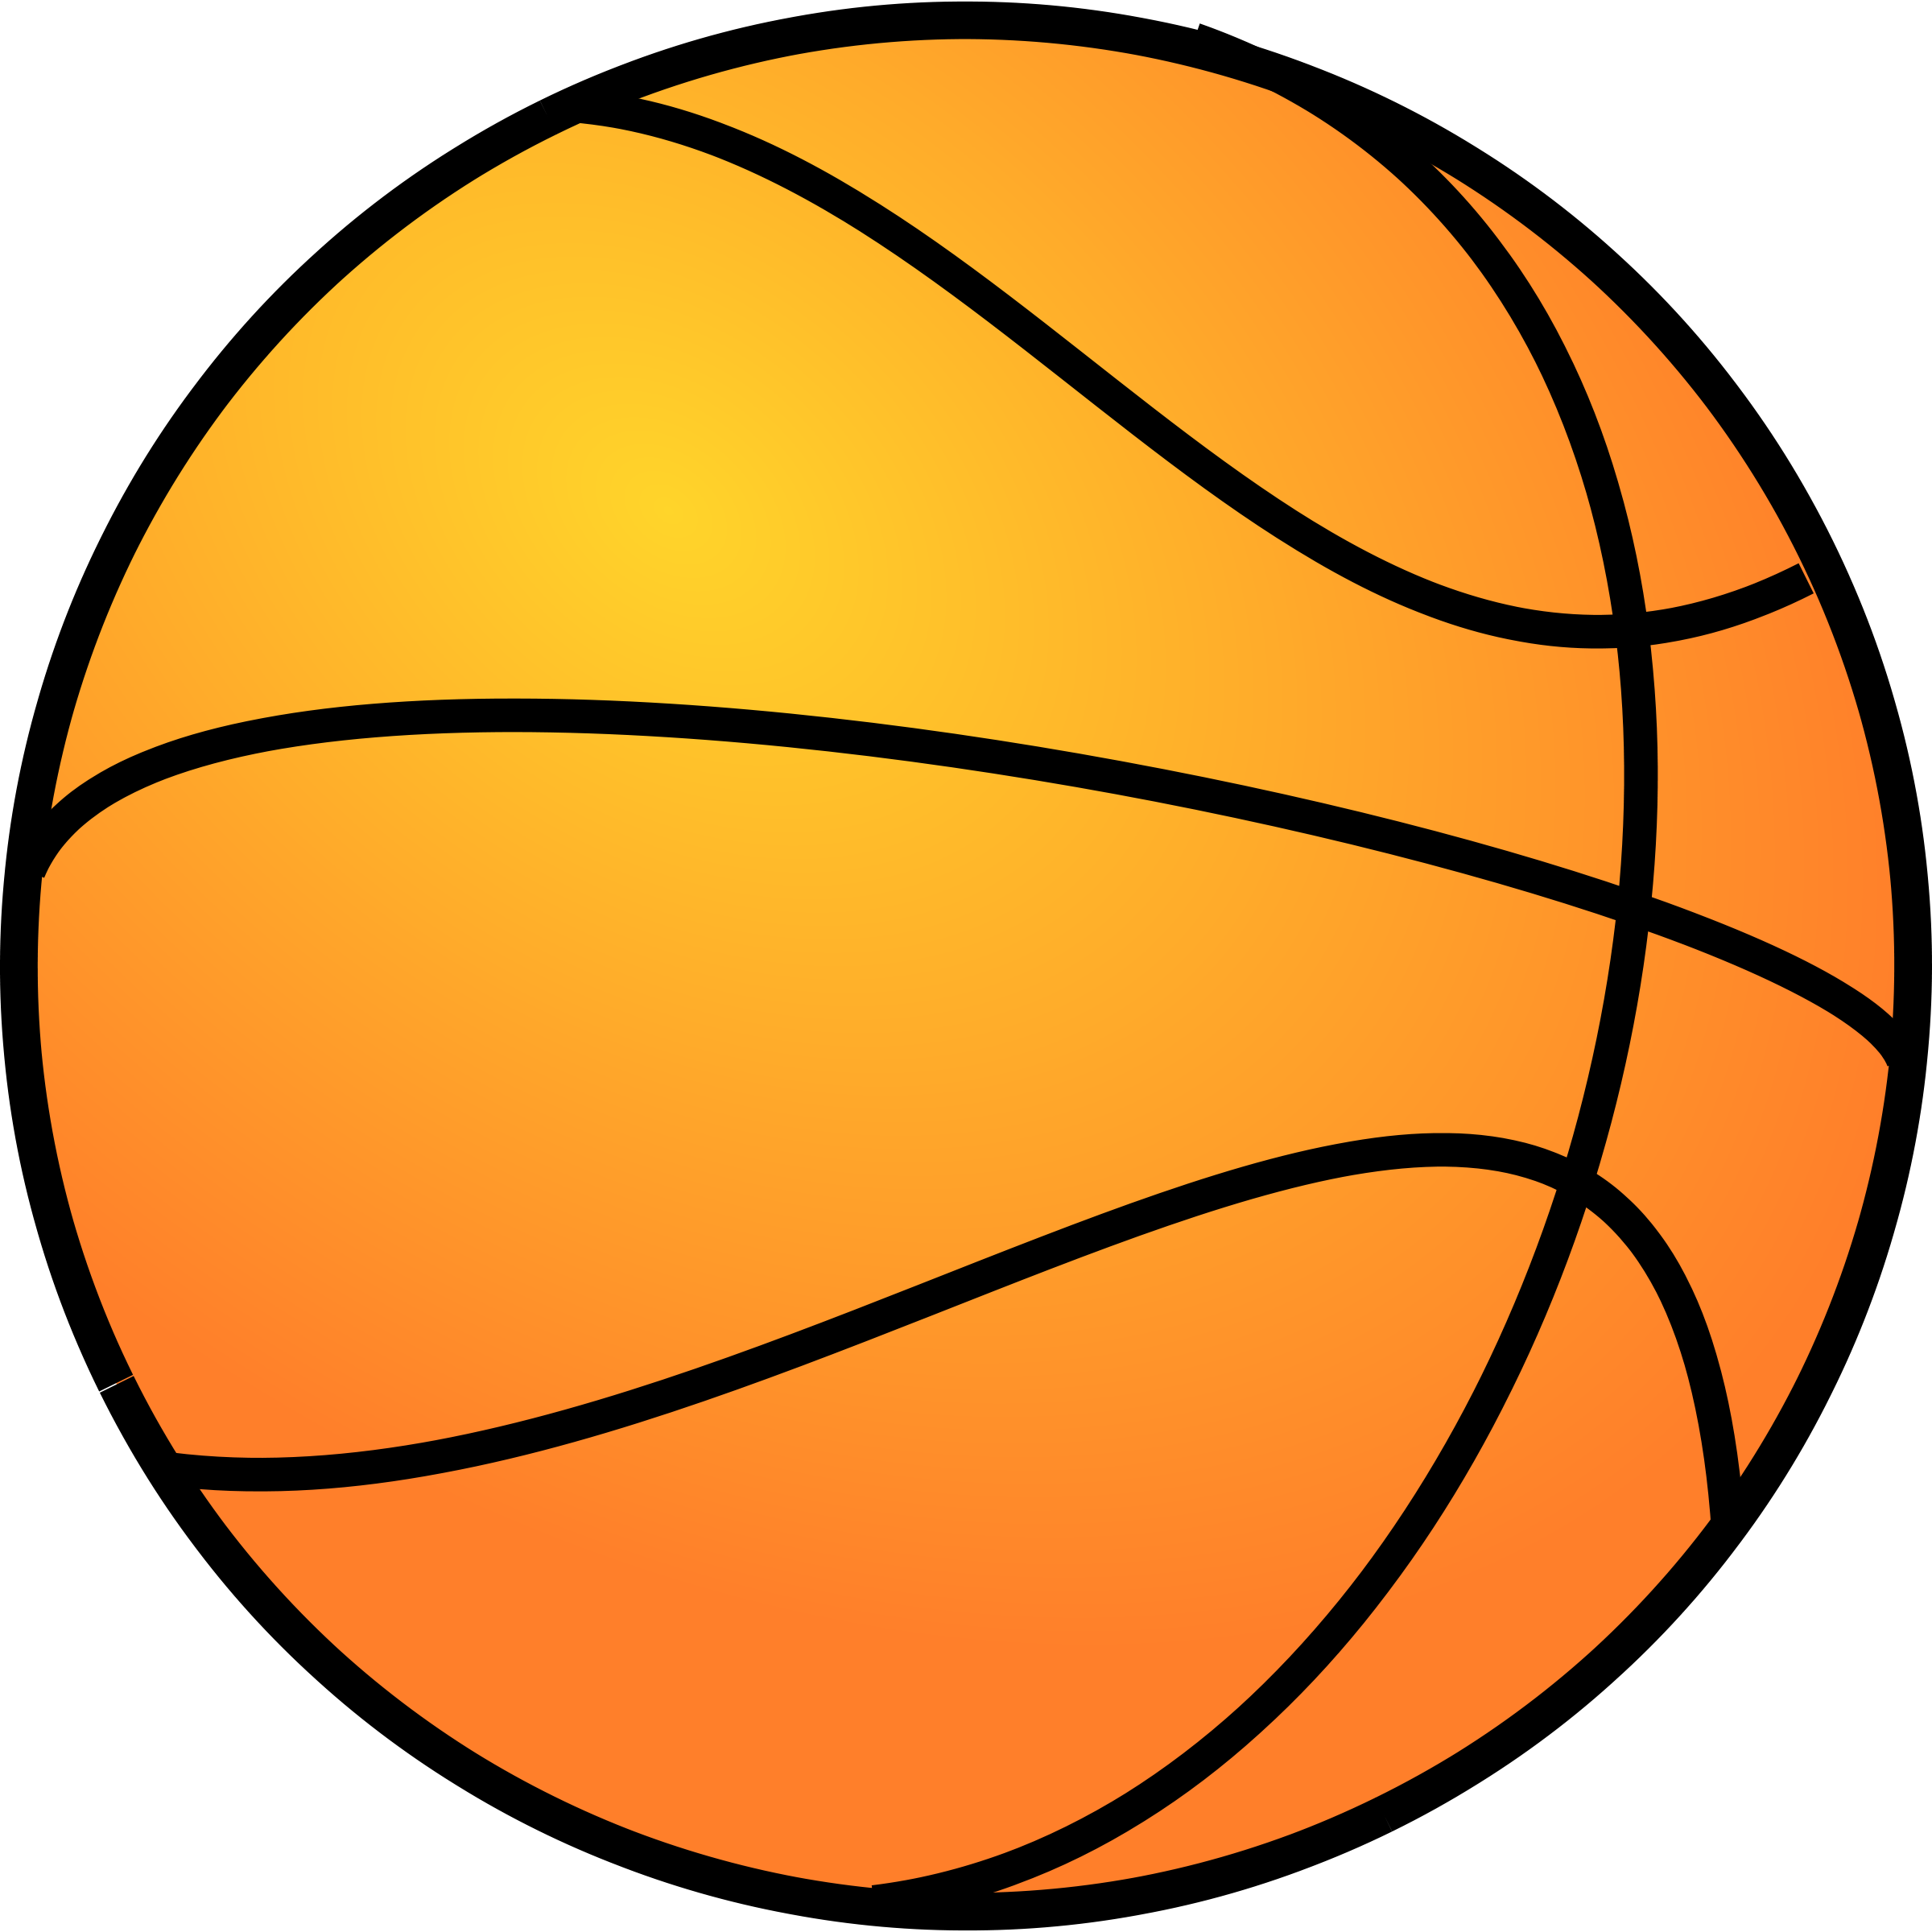 svg free stock . Basketball clipart.